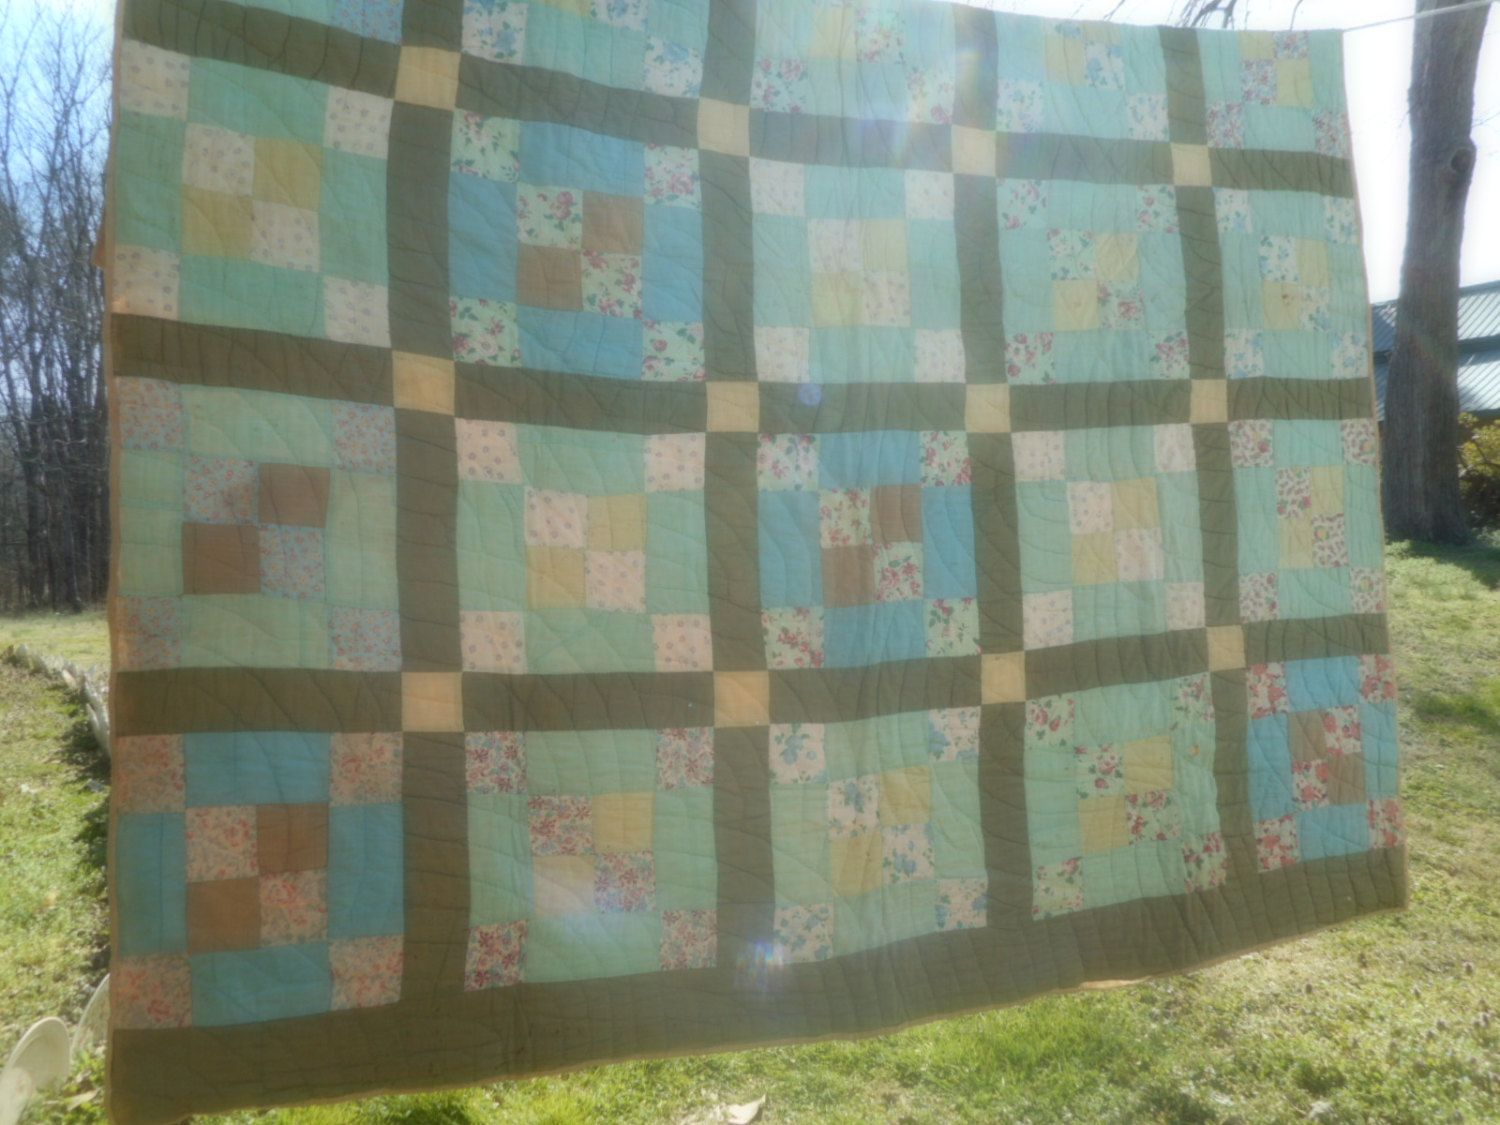 Vintage Quilt 1940 - 50  Retro LInens Vintage LInens Quilt Green Quilt #196R by rpreserved on Etsy